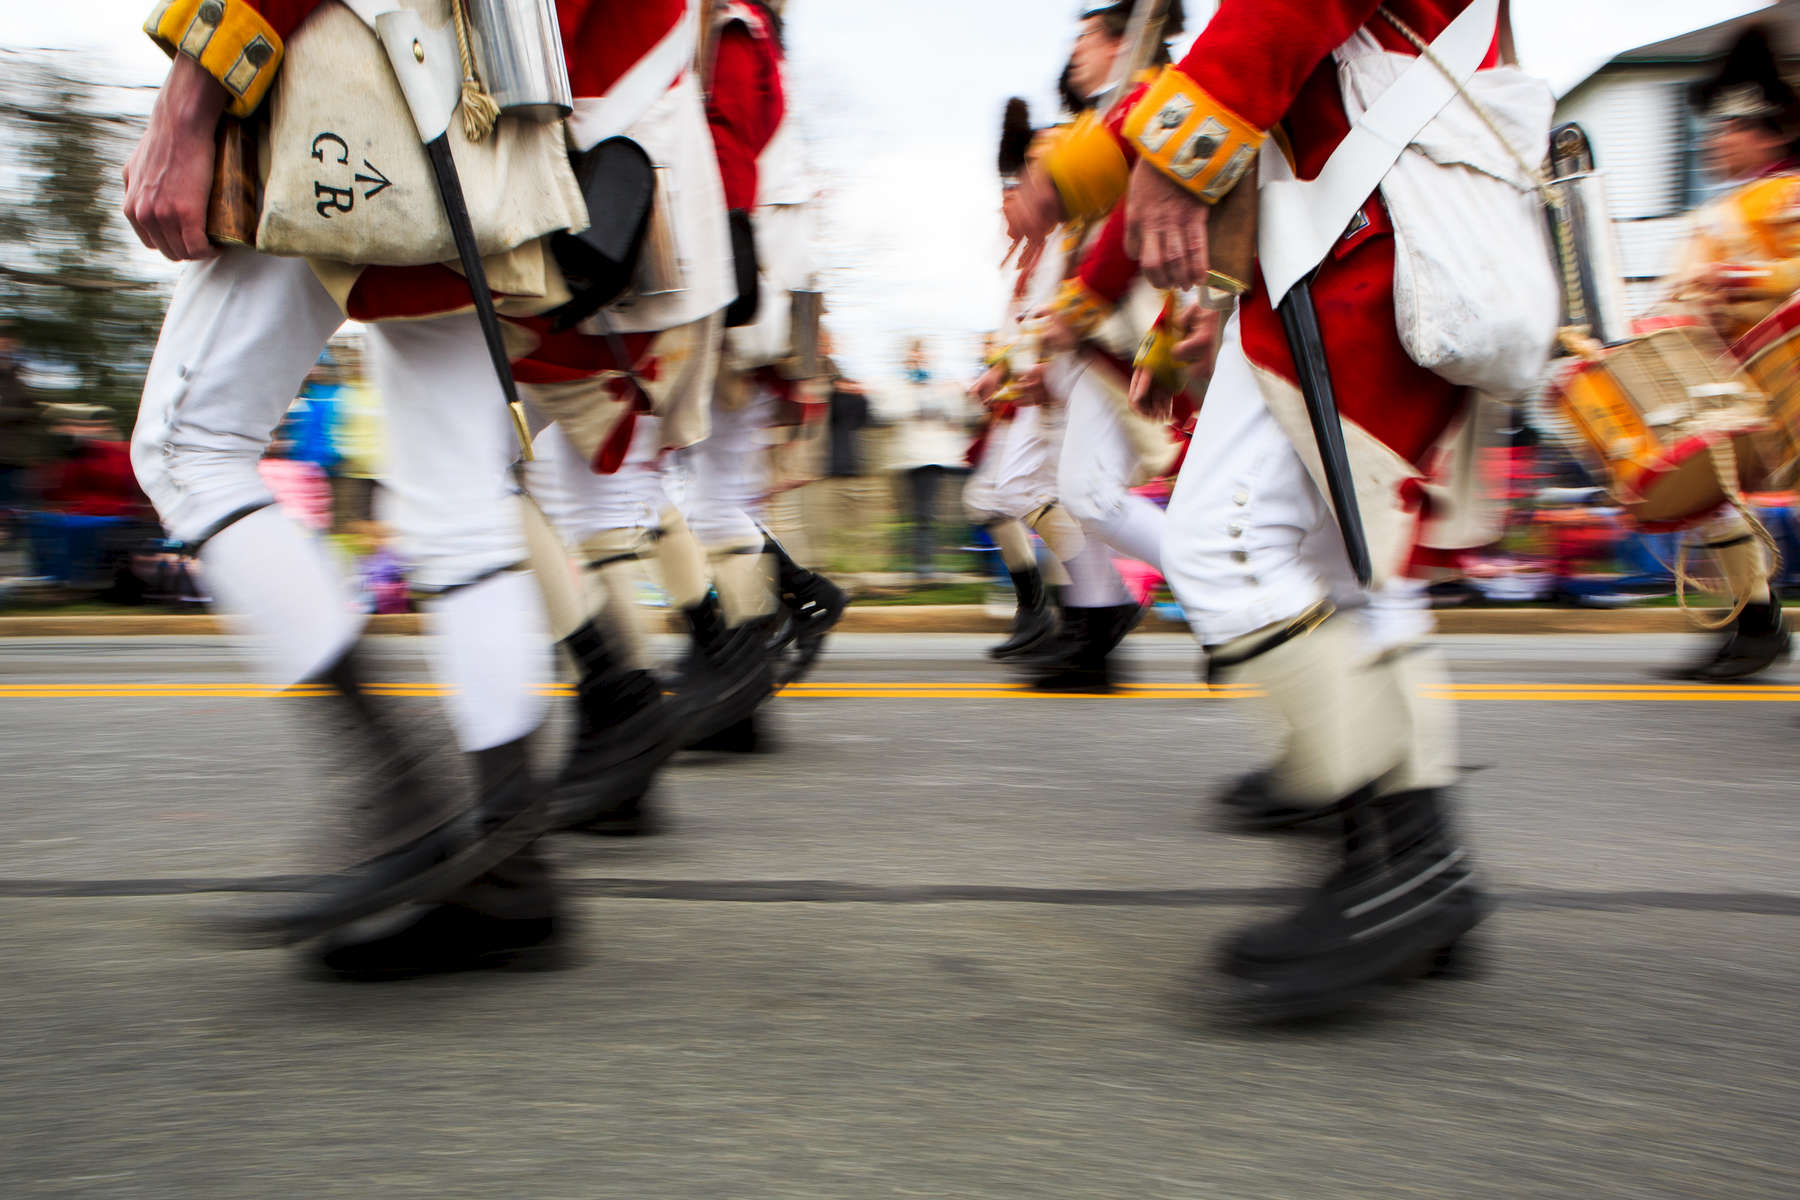 Lexington, MA., April 14, 2013: The town of Lexington celebrates its 300th anniversary with its annual Patriots Day parade. This year also marks the 238th anniversary of the Battle of Lexington on the village green. Photograph by Evan McGlinn for The New York Times